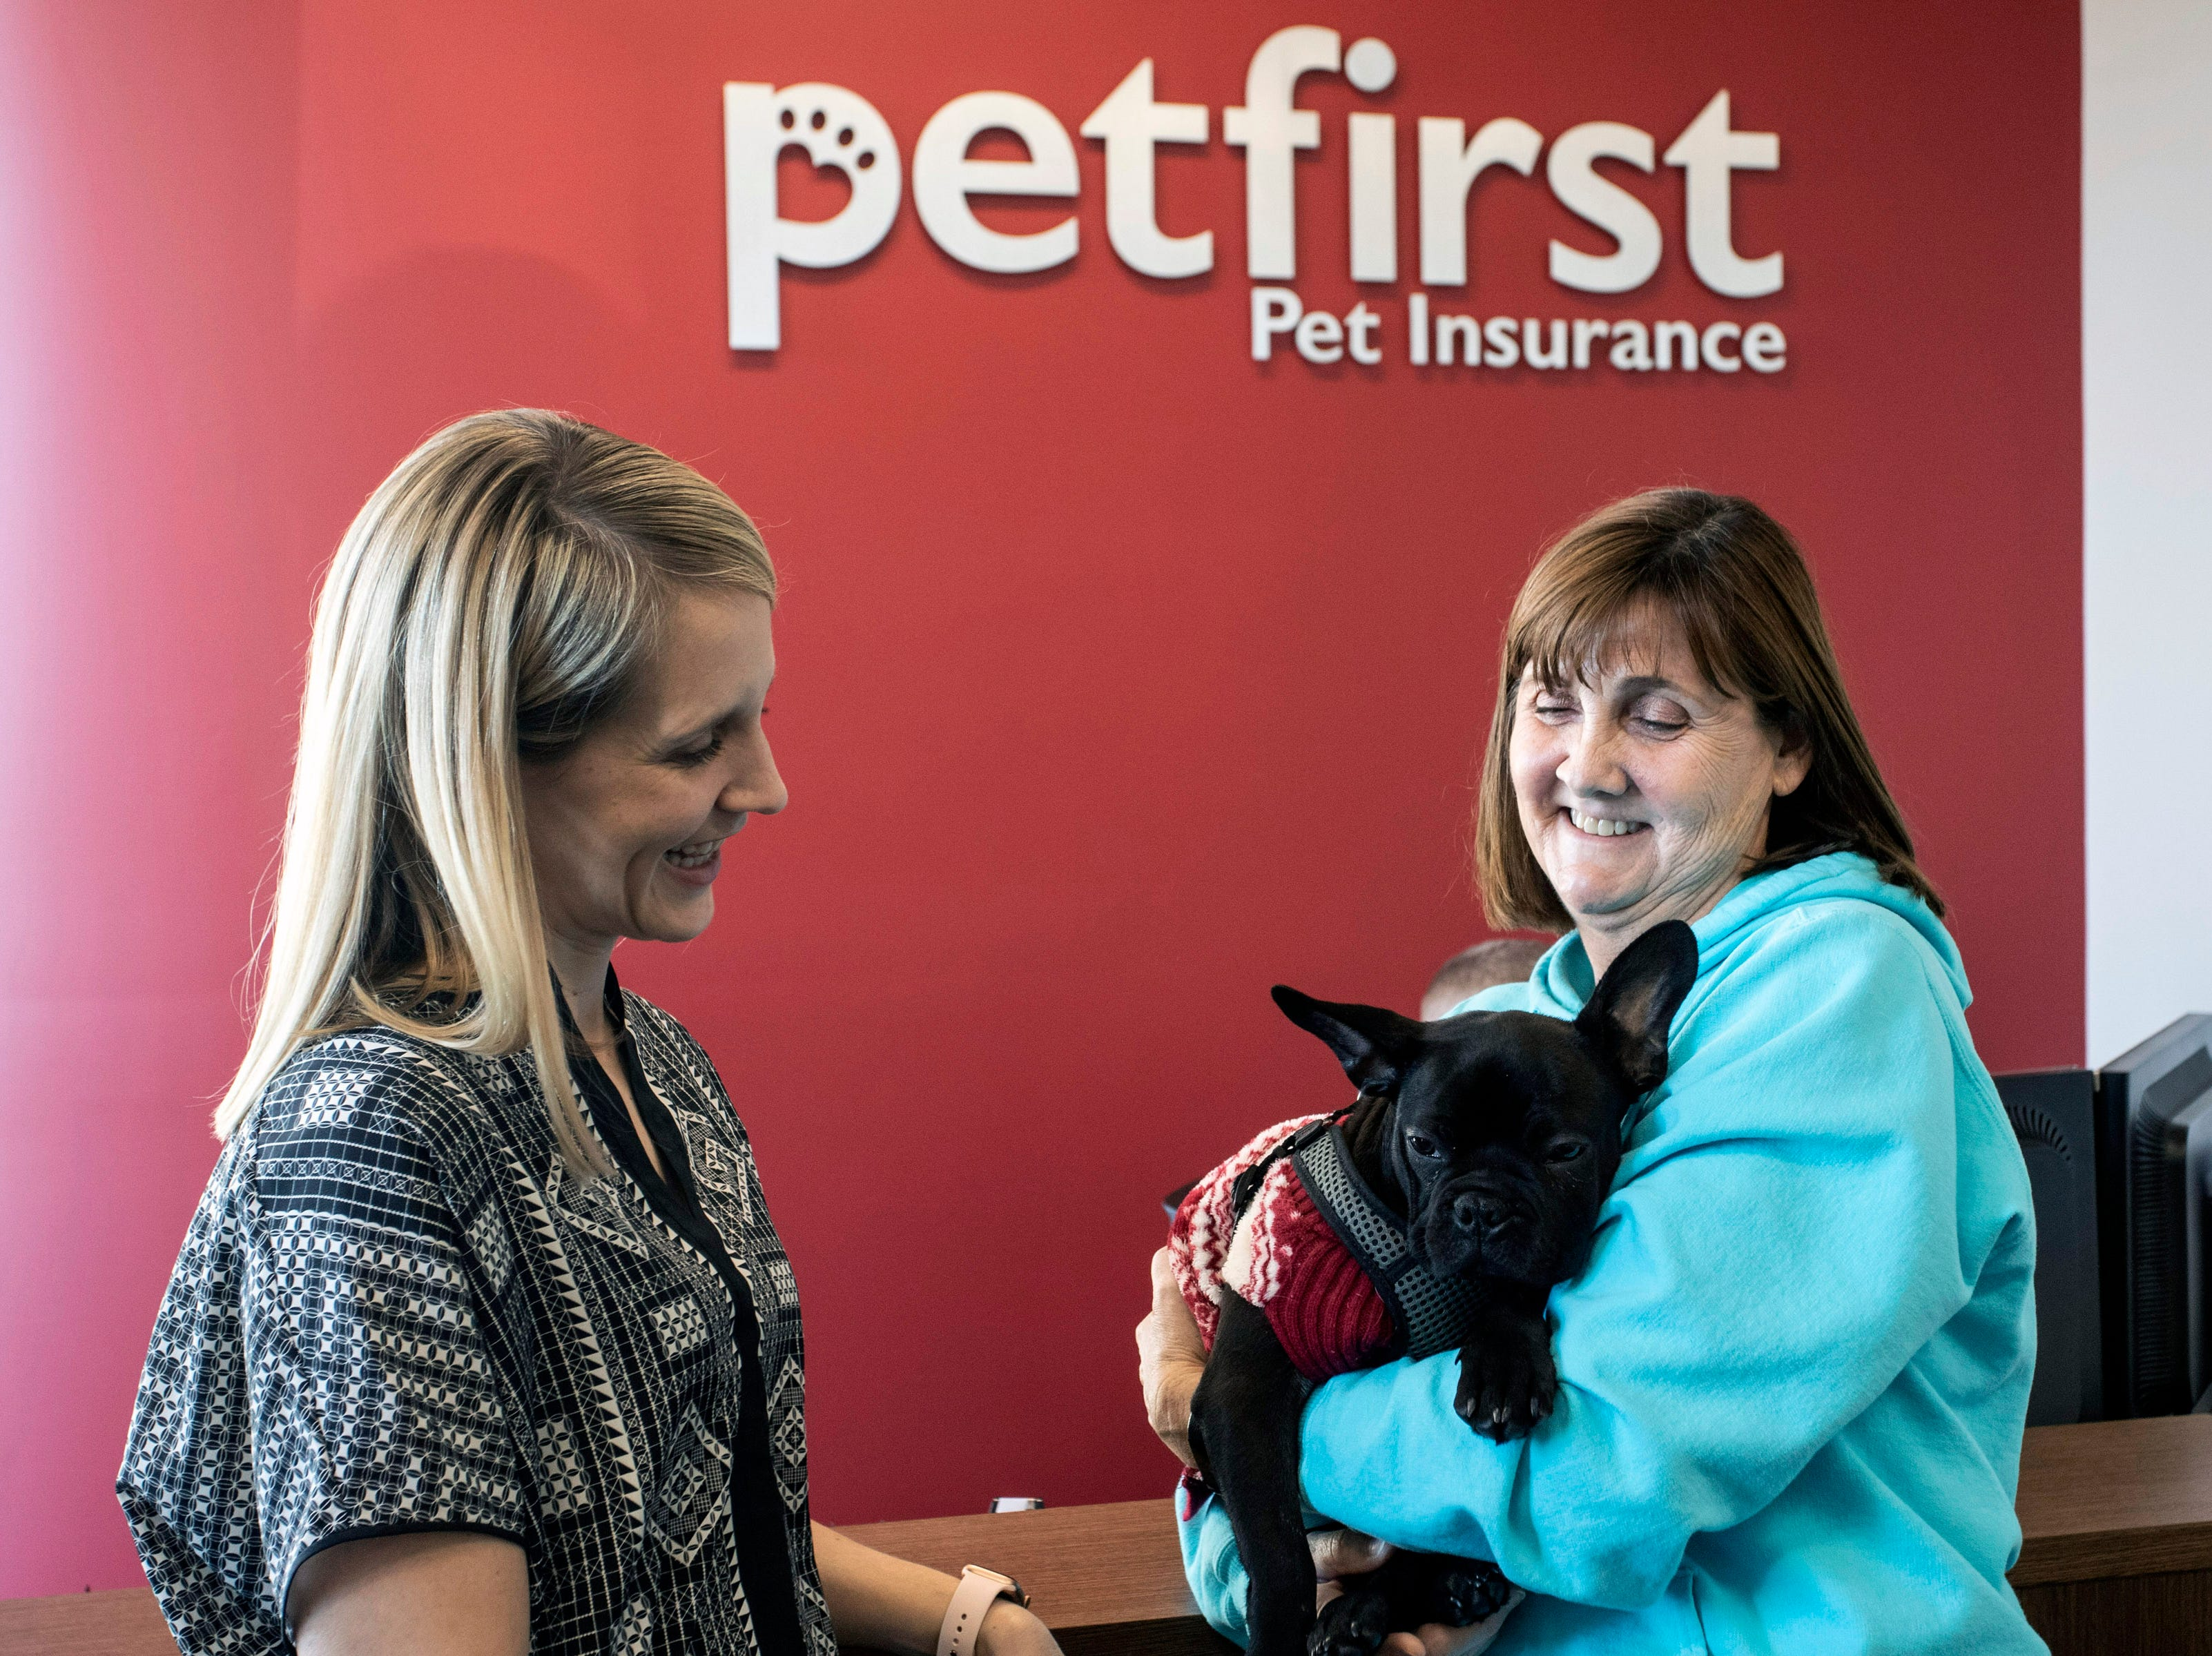 Lisa Recker and her French bulldog Winston are greeted by Katie Blakeley in the lobby of PetFirst in Jeffersonville. Jan. 10, 2019